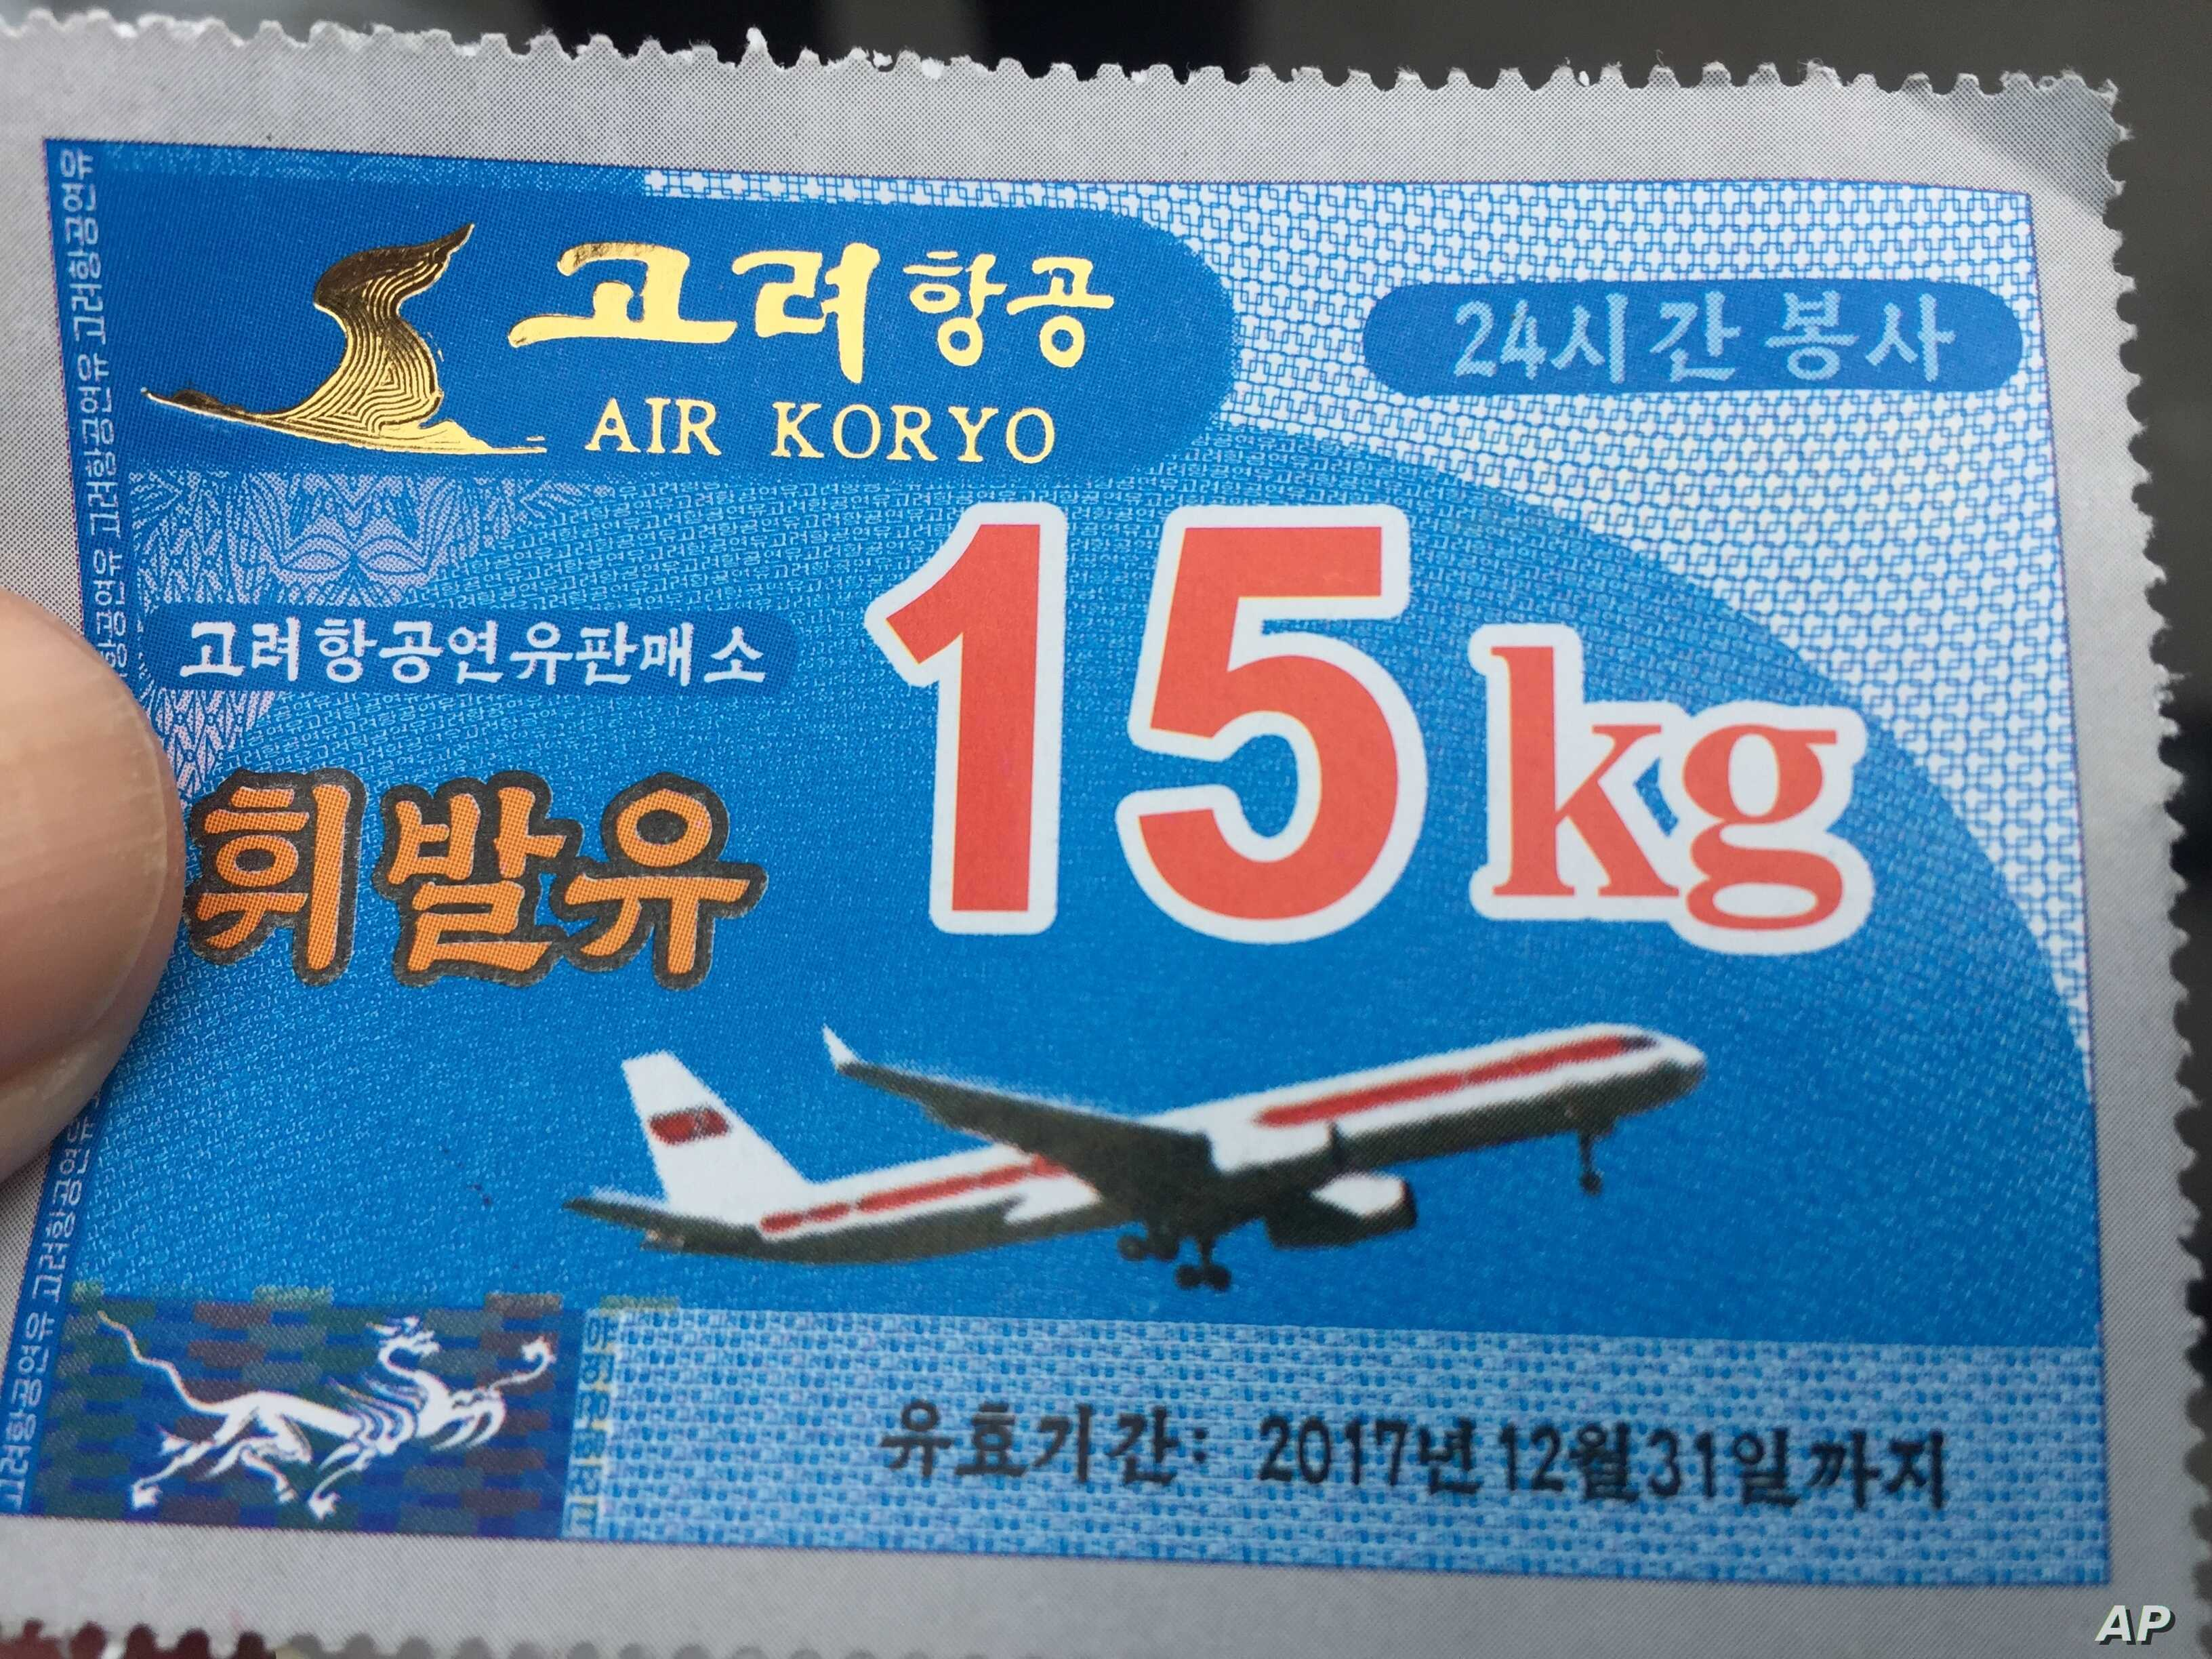 This is a coupon for gasoline sold at an Air Koryo gas station in Pyongyang, North Korea, Jan. 31, 2018. The moves by North Korea's flagship airline, Air Koryo mirror broader shifts in the North Korean economy under leader Kim Jong Un over the past...